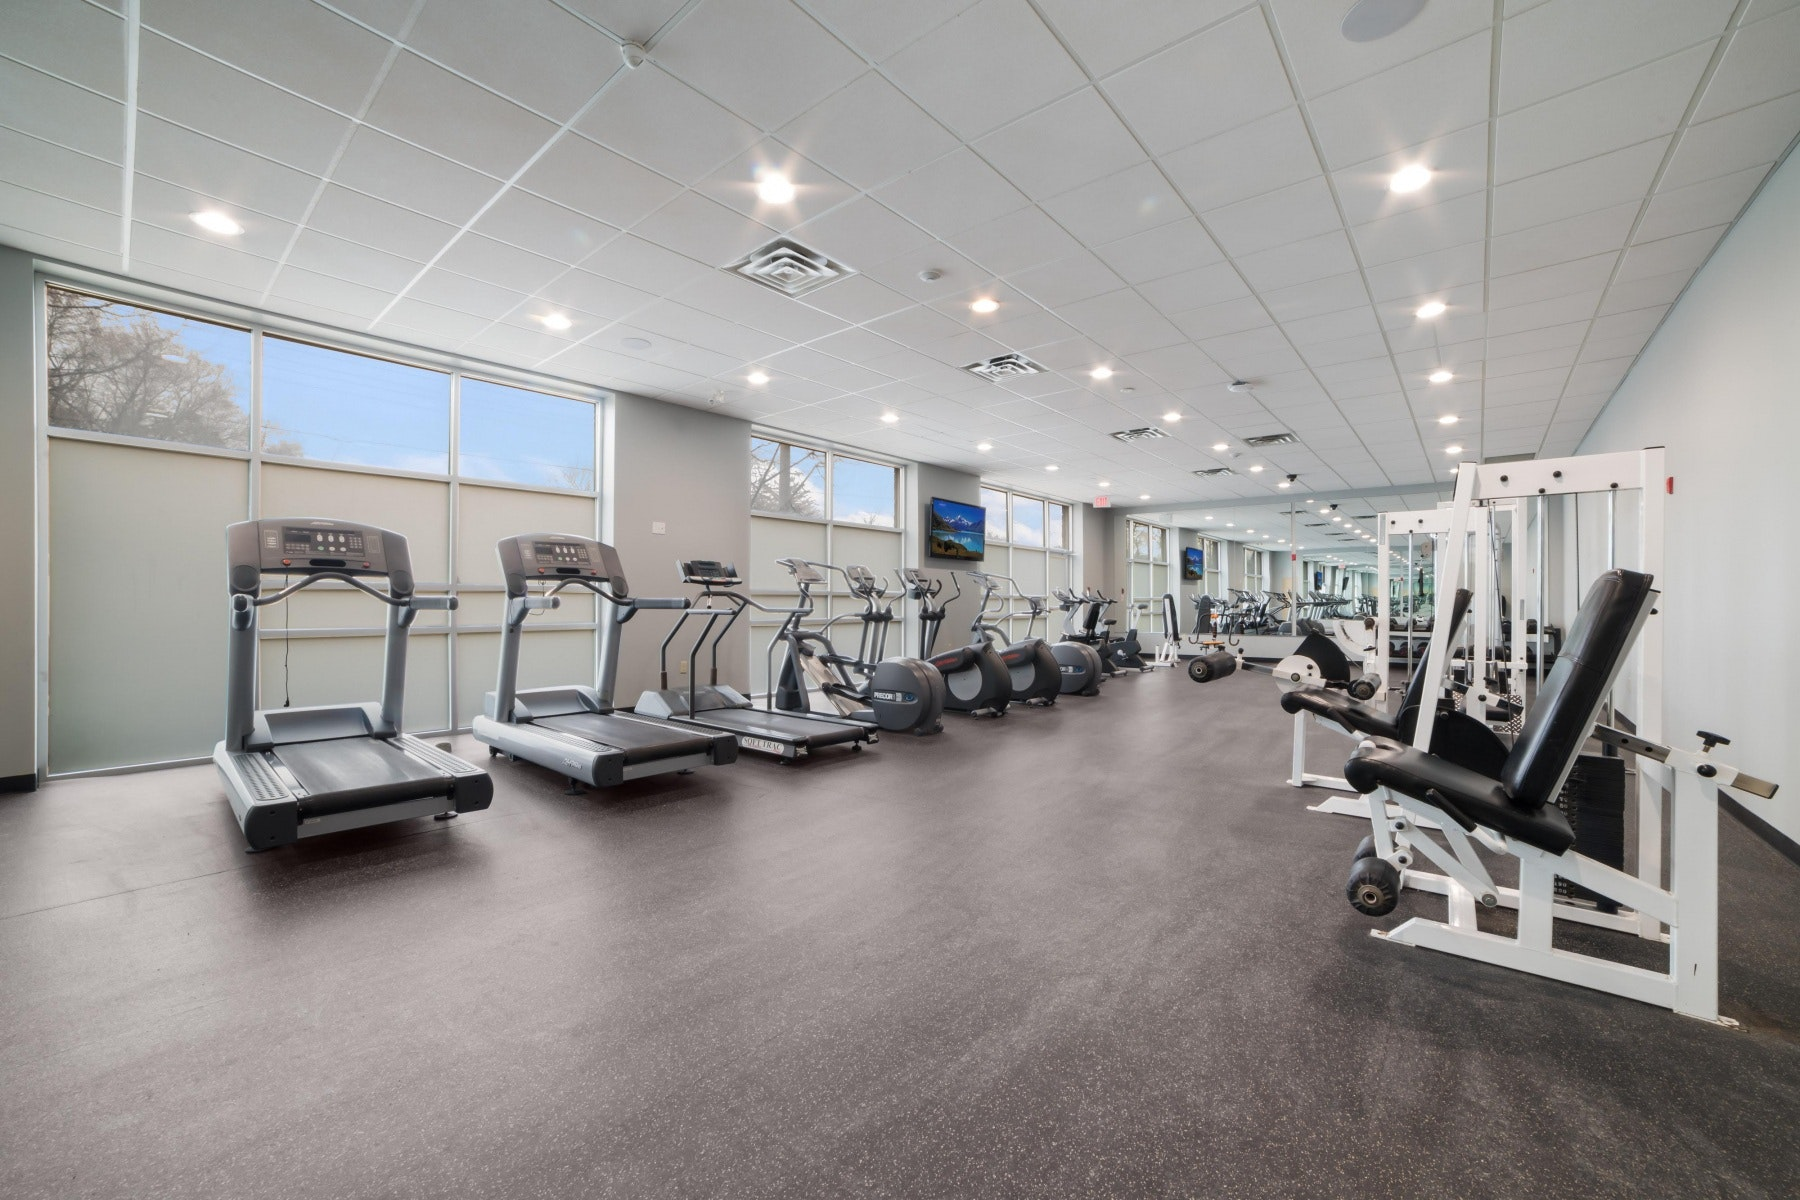 Fitness Centre with treadmills and weights